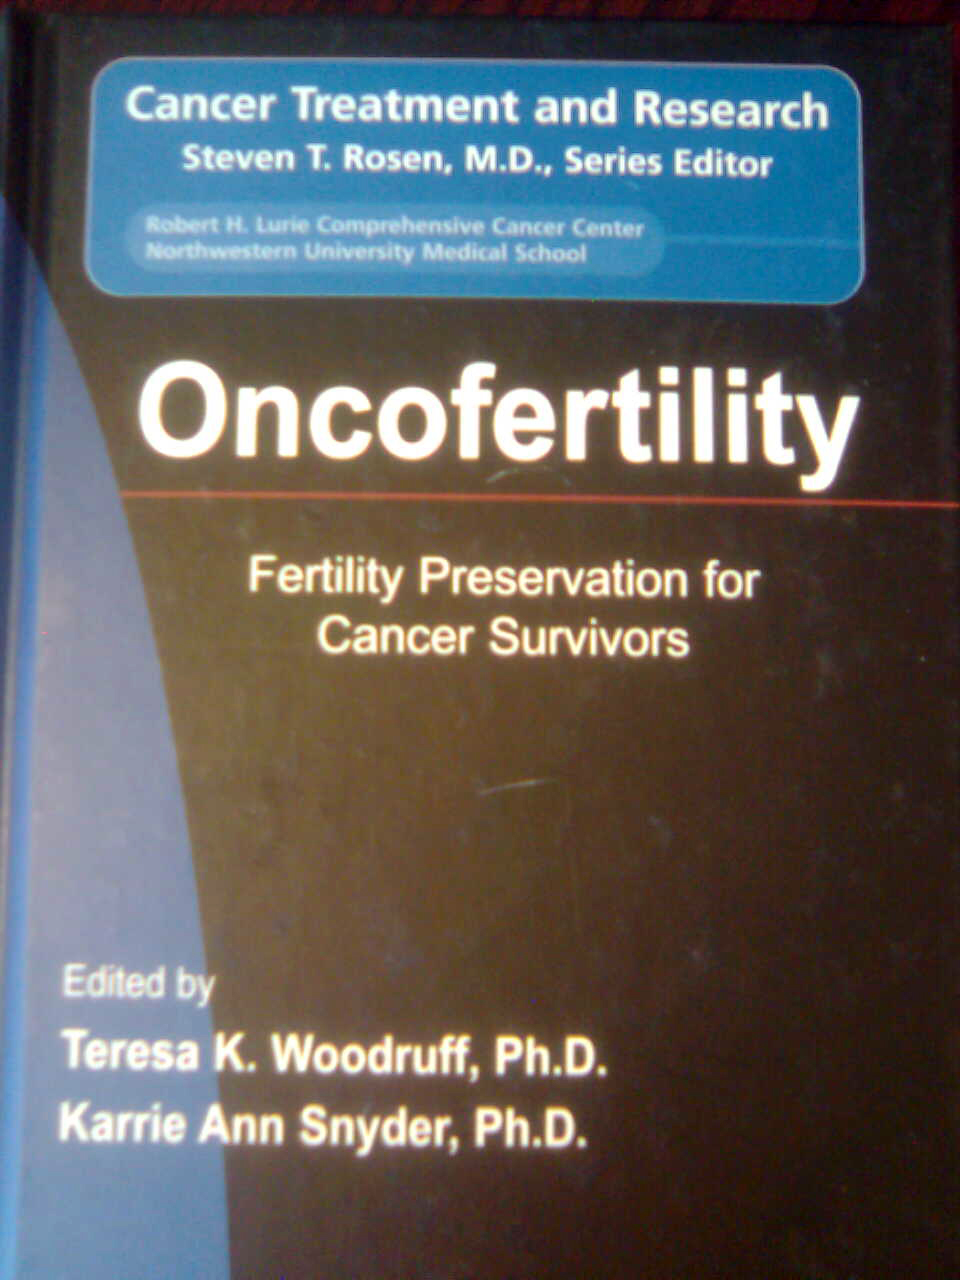 Cover of the Oncofertility book reviewed by Dr. Jared Robins in the journal Fertility and Sterility